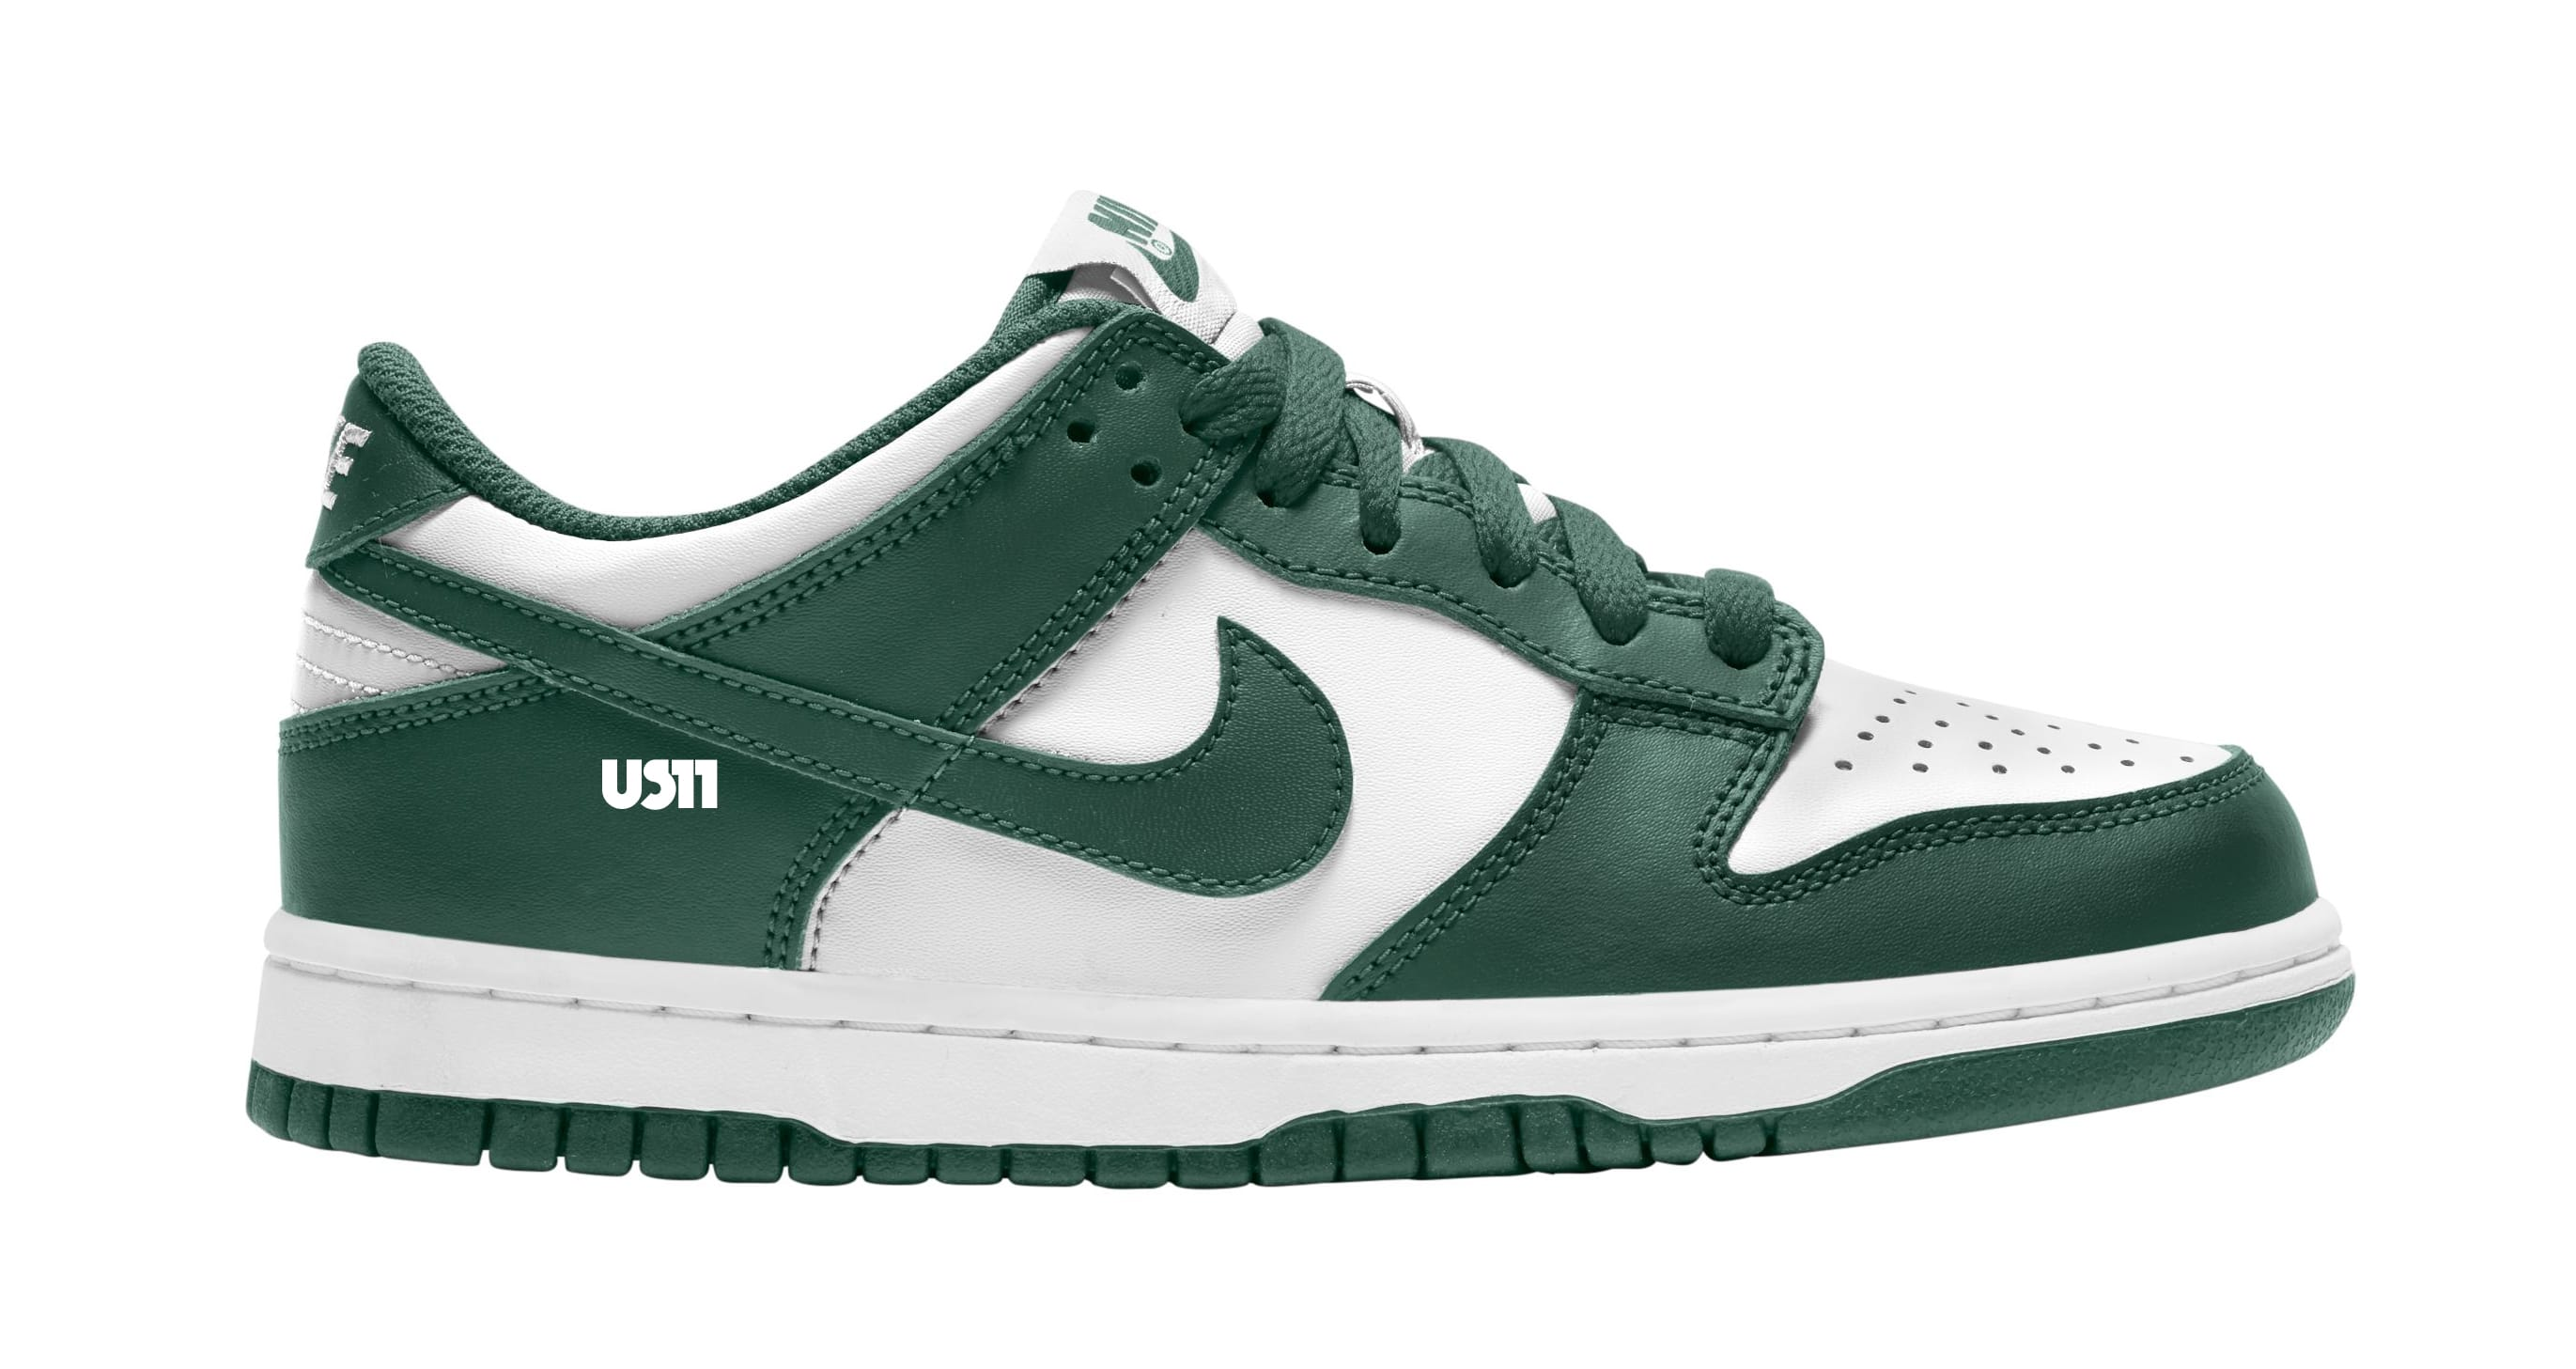 Nike Dunk Low GS White/Green Lateral